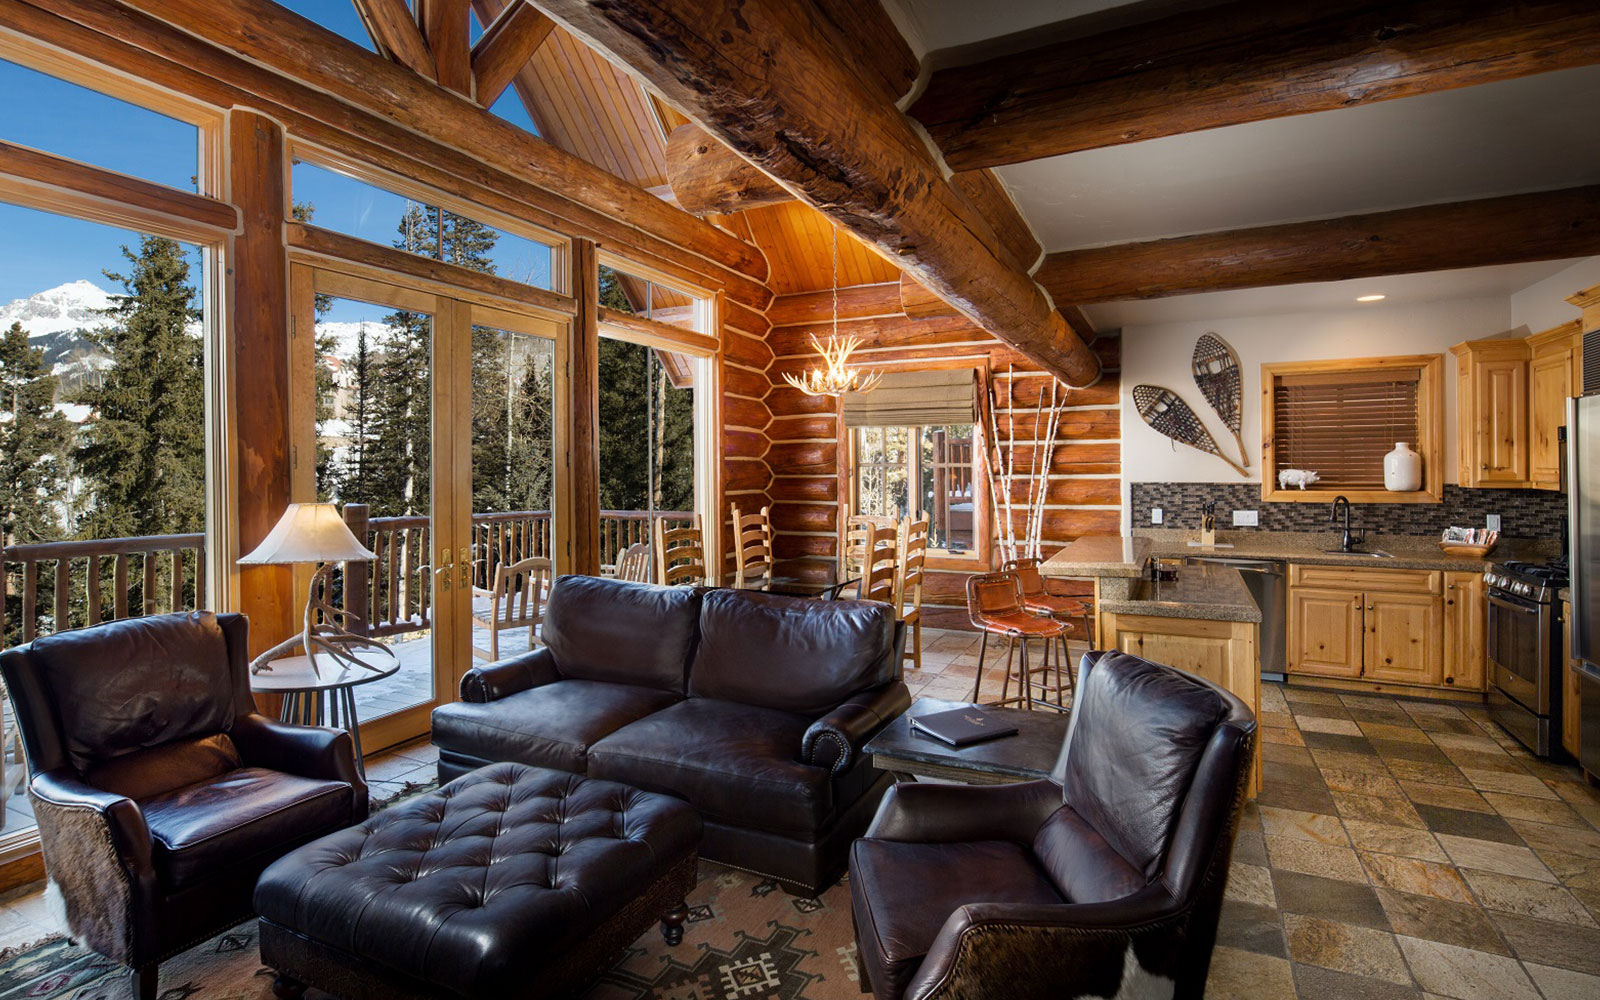 Luxury log cabins in telluride co mountain lodge telluride for Mountain luxury